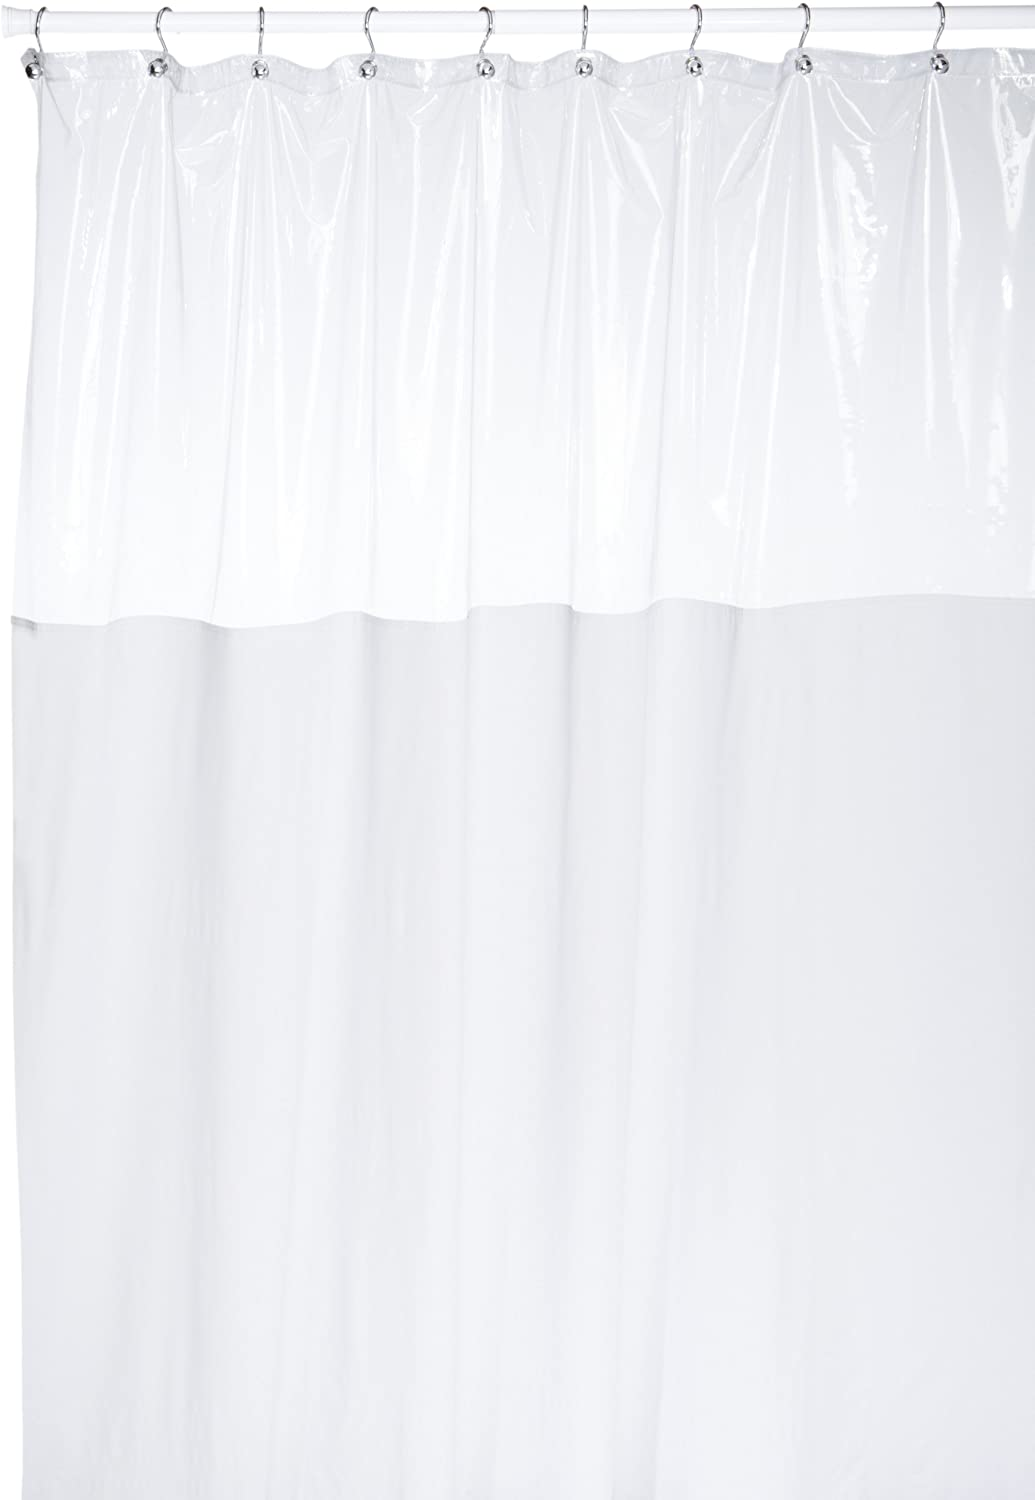 Carnation Home Fashions 72 by 84-Inch Vinyl Window Shower Curtain, White